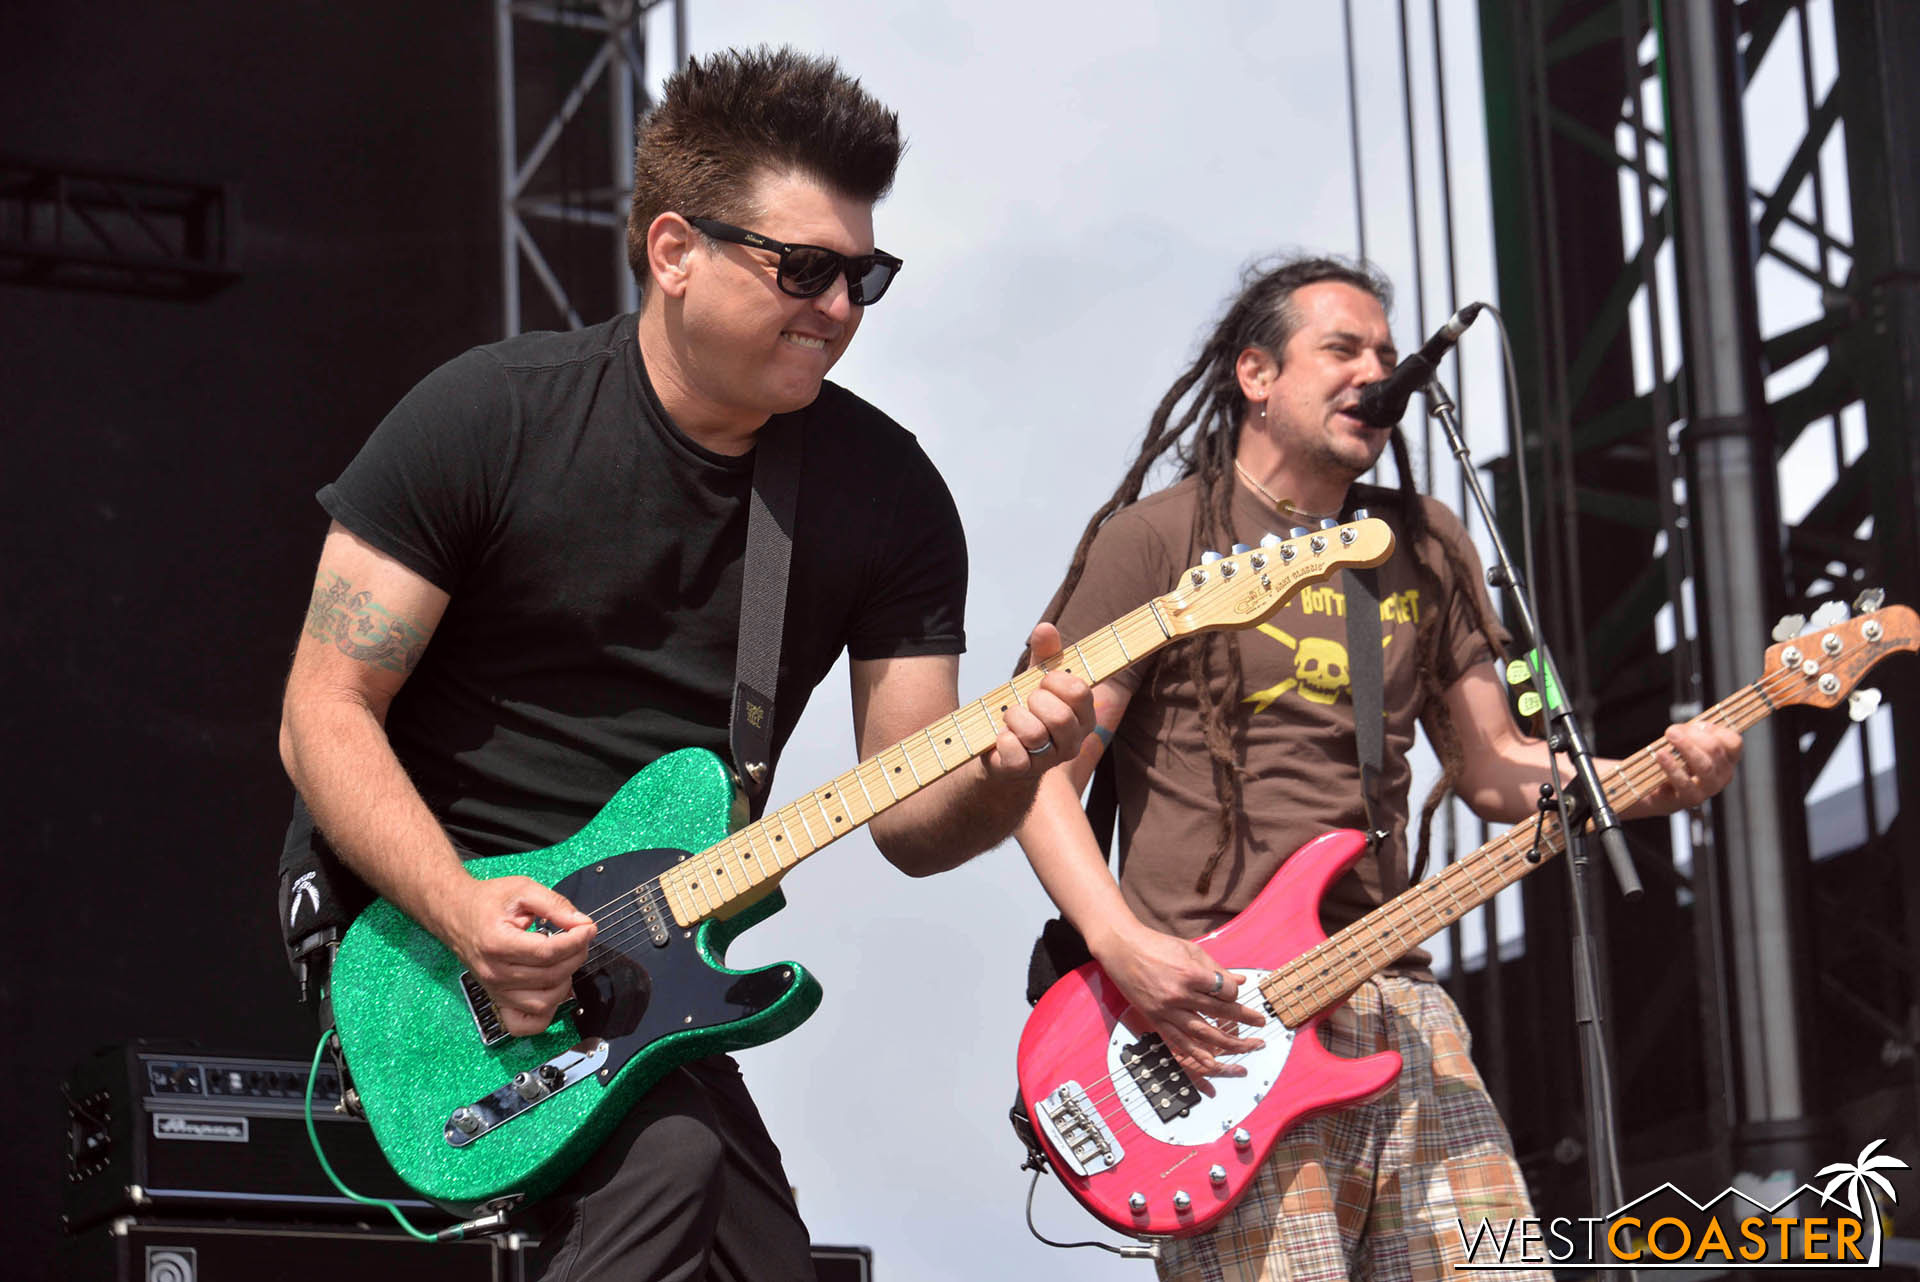 Less than Jake, a highlight at Back to the Beach's Sunday lineup.